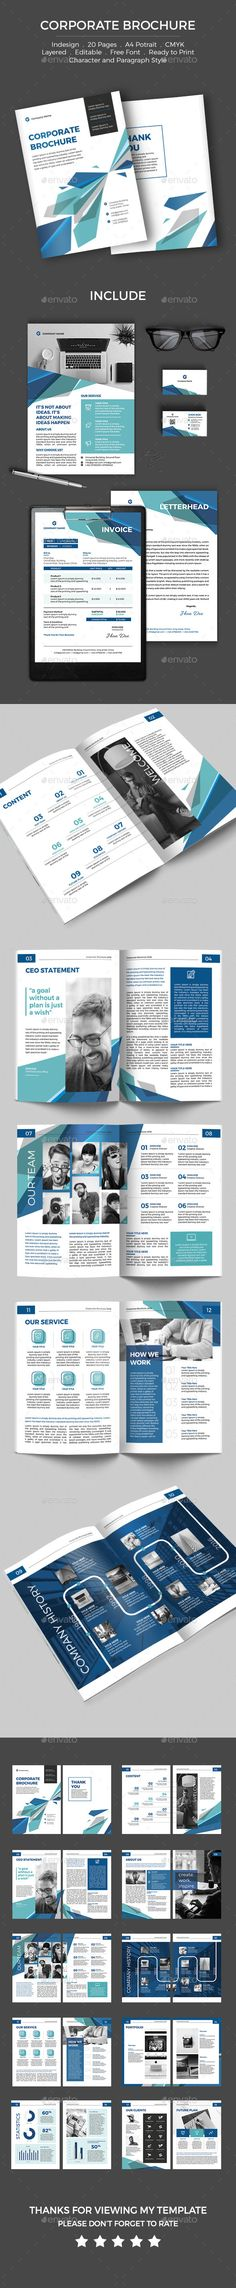 Corporate Brochure  — InDesign Template #company brochure #modern • Download ➝ https://graphicriver.net/item/corporate-brochure/18519747?ref=pxcr